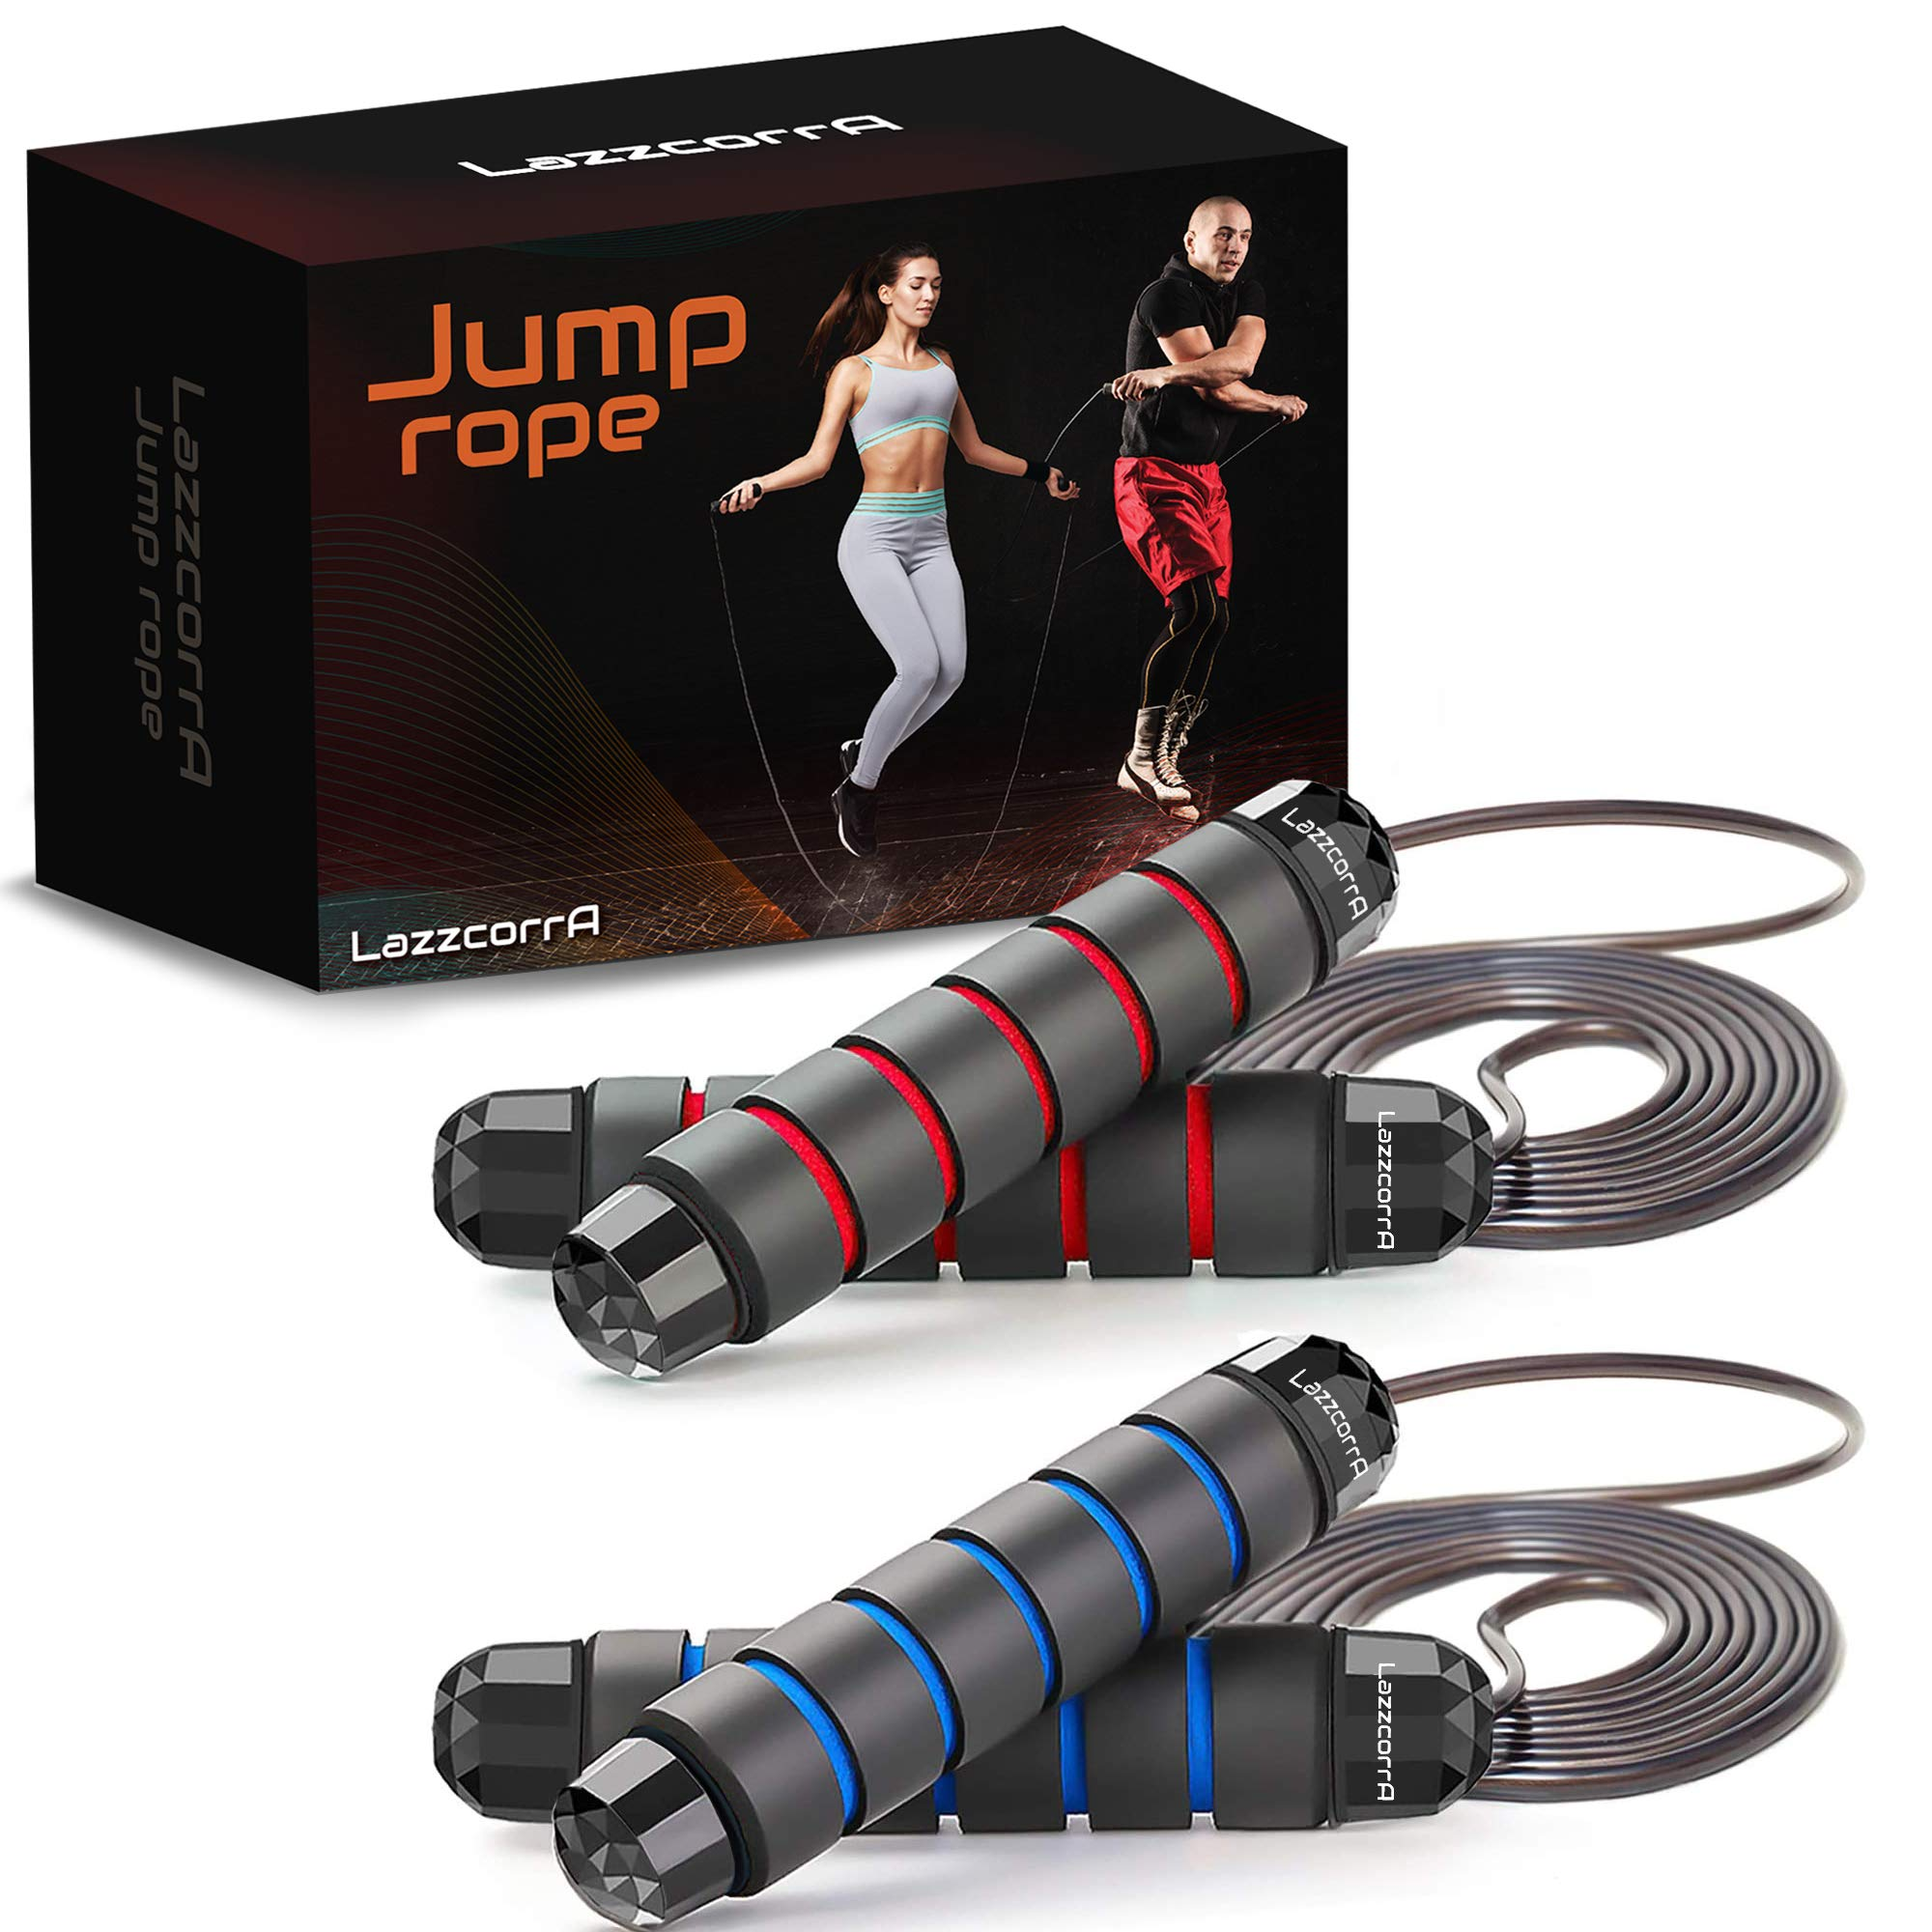 Jump rope, 2 Pack Speed Jumping Ropes for Workout, Fitness and Gym Exercise - Adjustable Skipping Rope Set for Kids and Adults ( Men and Women ) with Rapid Ball Bearing System and Memory Foam Handles